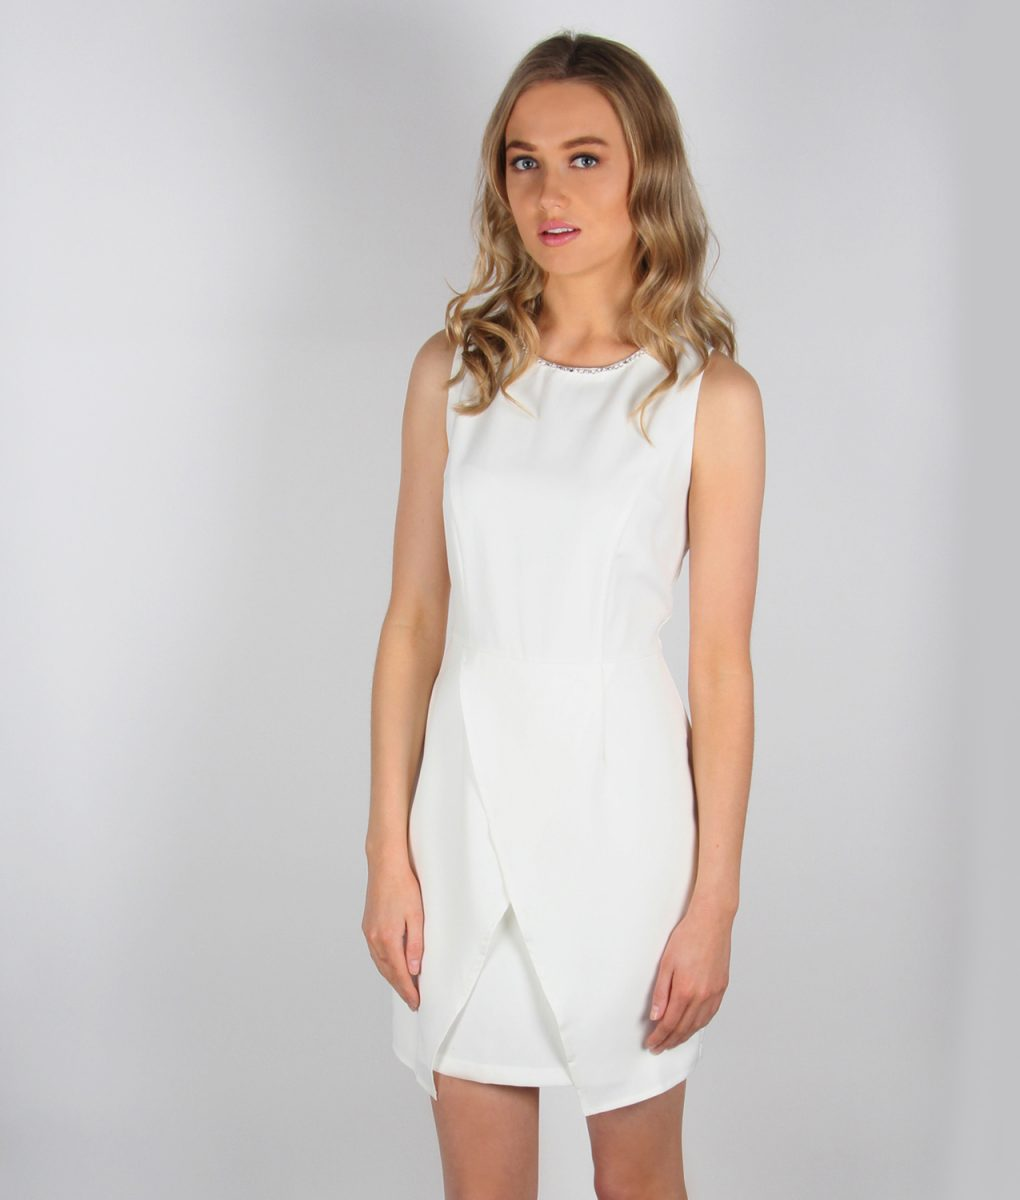 Alila white tailored wrap dress.